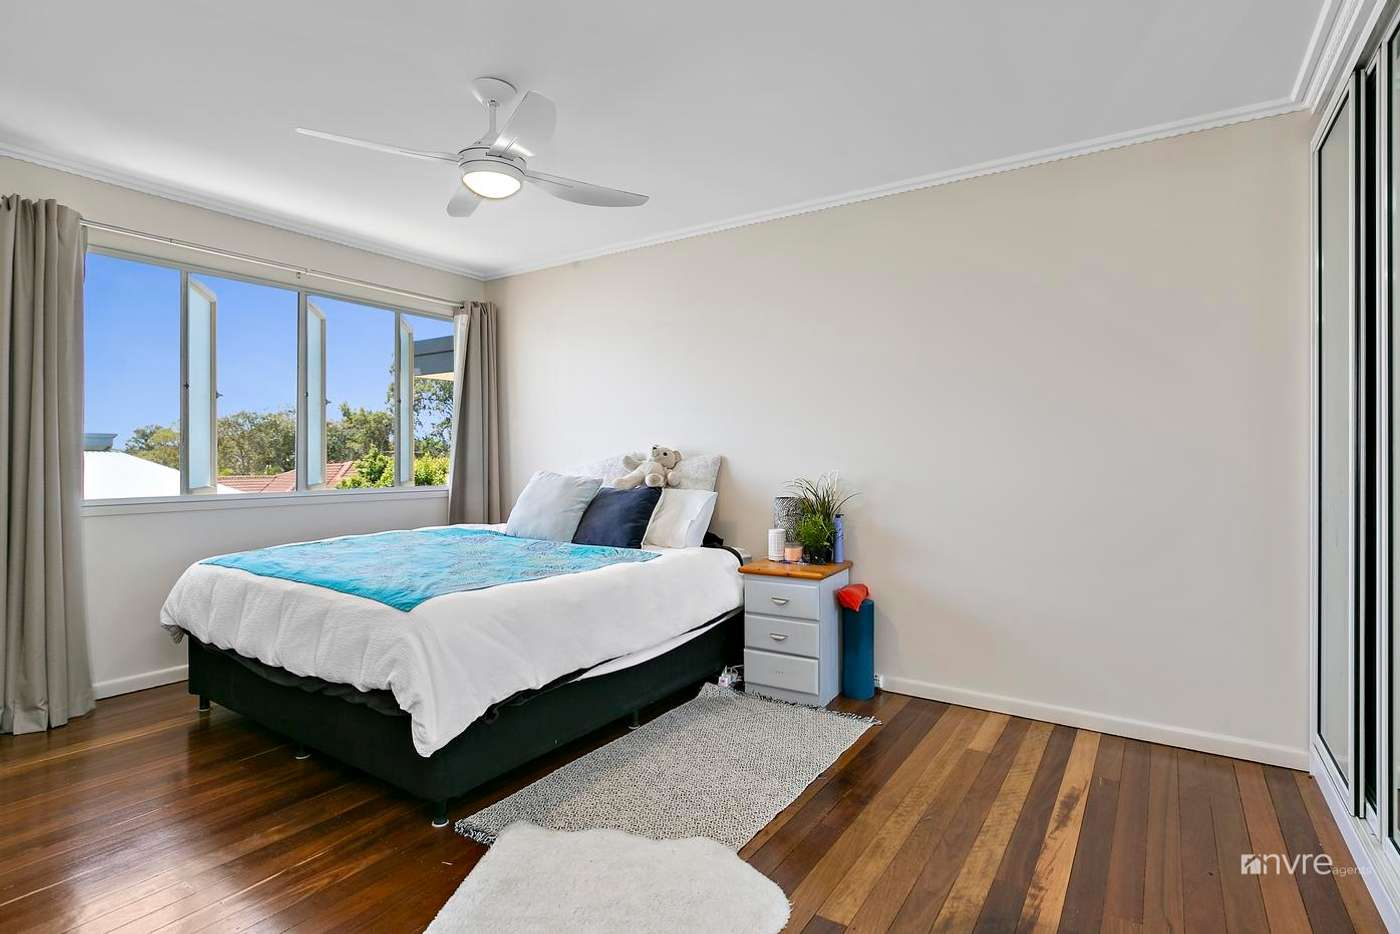 Seventh view of Homely house listing, 24 Kingsford Street, Kippa-ring QLD 4021